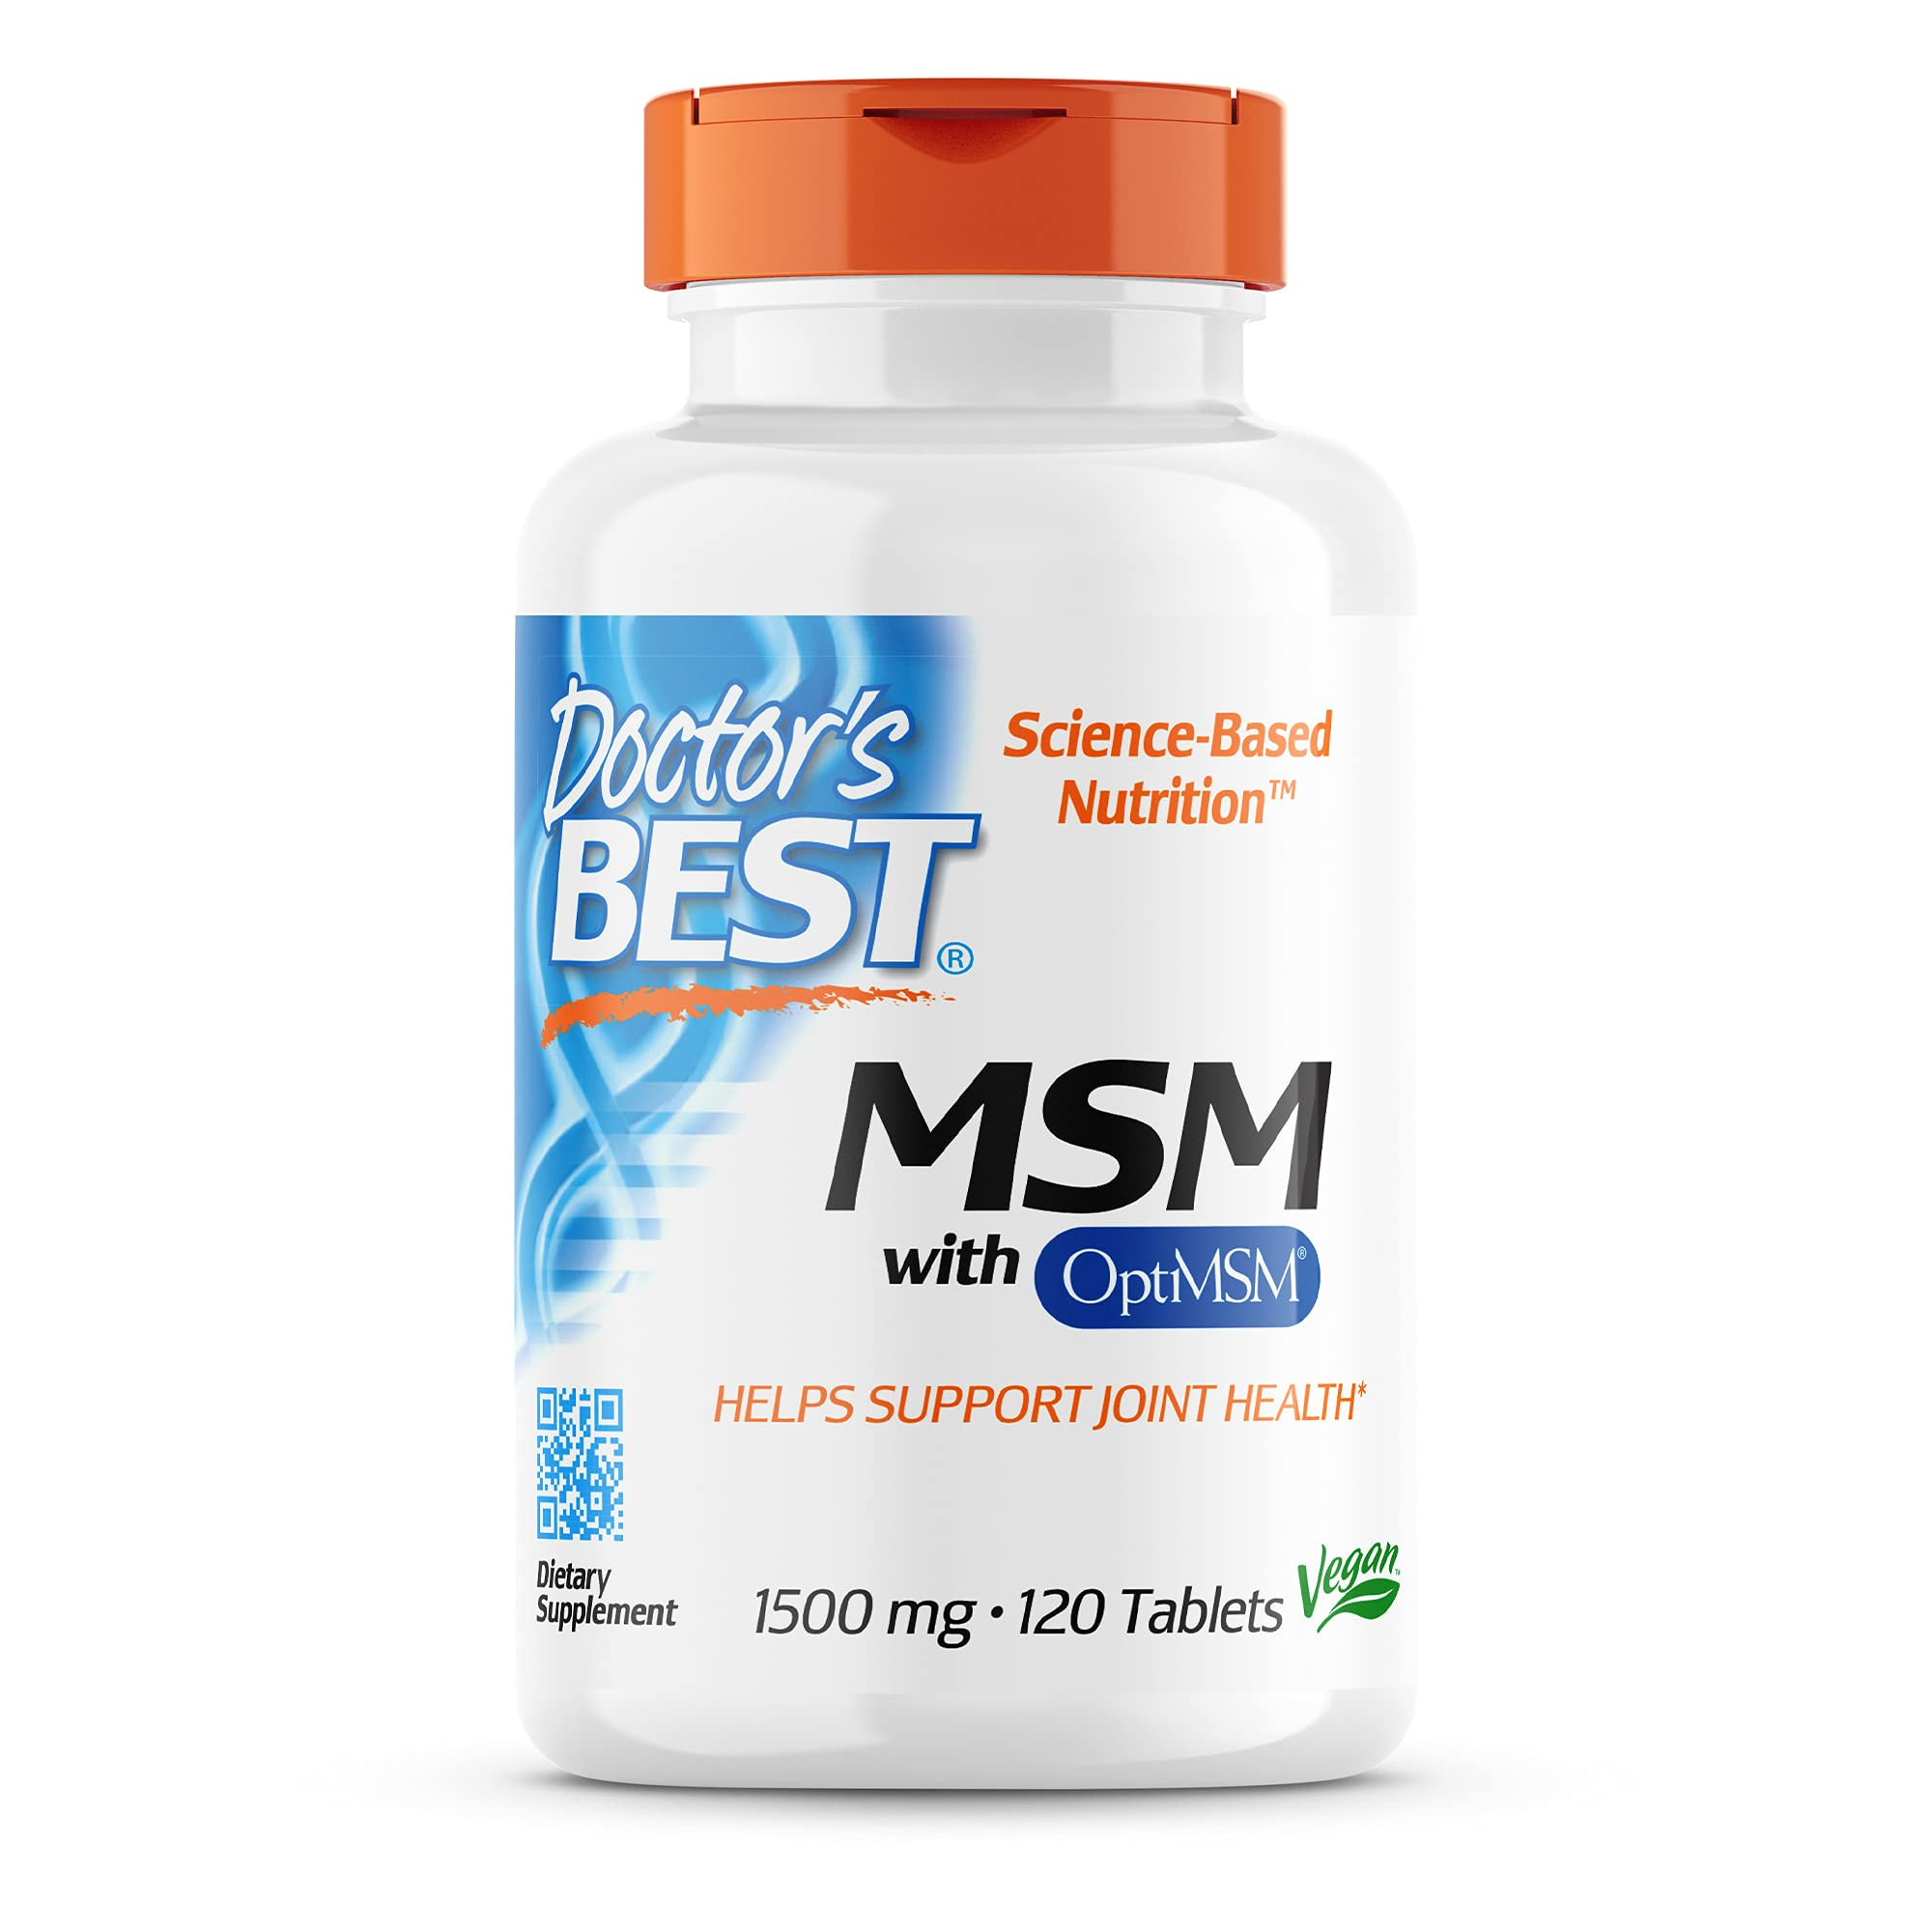 Doctor's Best MSM with OptiMSM, Non-GMO, Gluten Free, Joint Support, 1500 mg, 120 Tablets (DRB-00097)